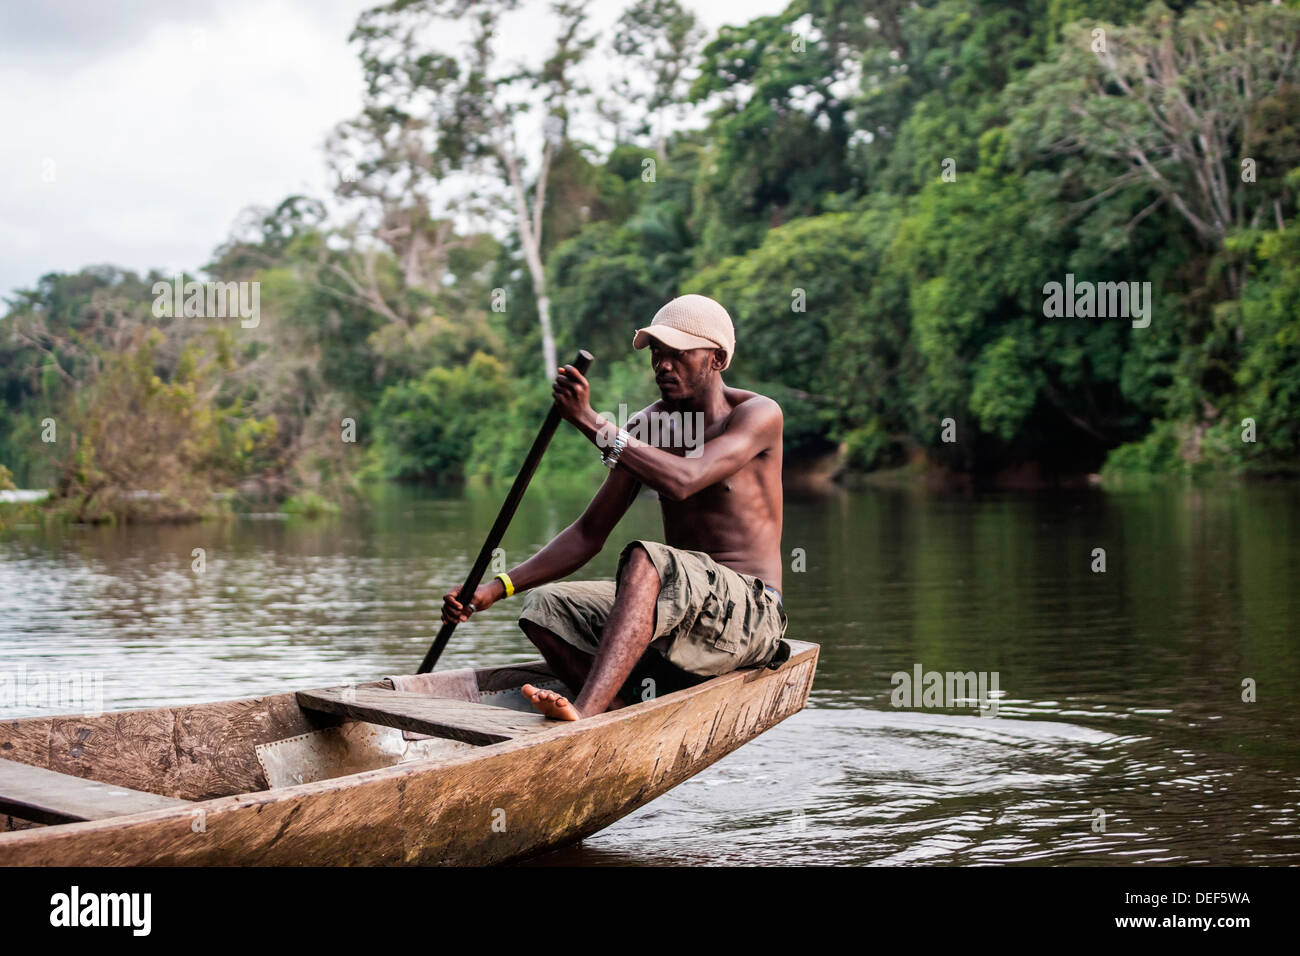 africa-cameroon-kribi-man-in-traditional